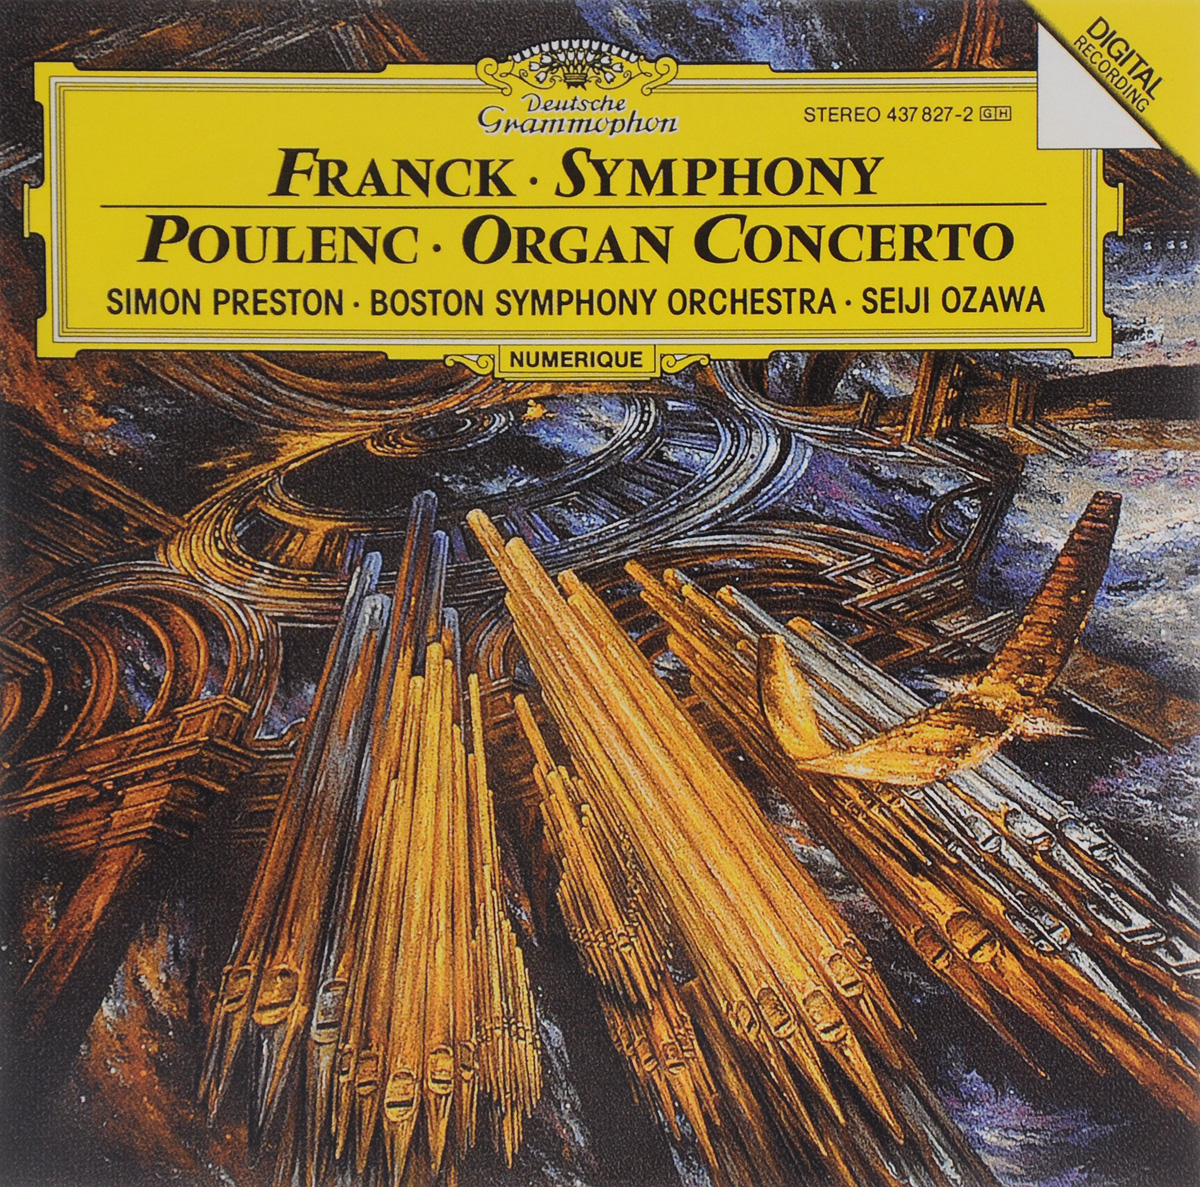 Сейджи Озава,Boston Symphony Orchestra Seiji Ozawa. Franck. Symphony / Poulenc. Organ Concerto сейджи озава михаил плетнев boston symphony orchestra русский национальный оркестр seiji ozawa mikhail pletnev tchaikovsky complete recordings collectors edition 5 cd